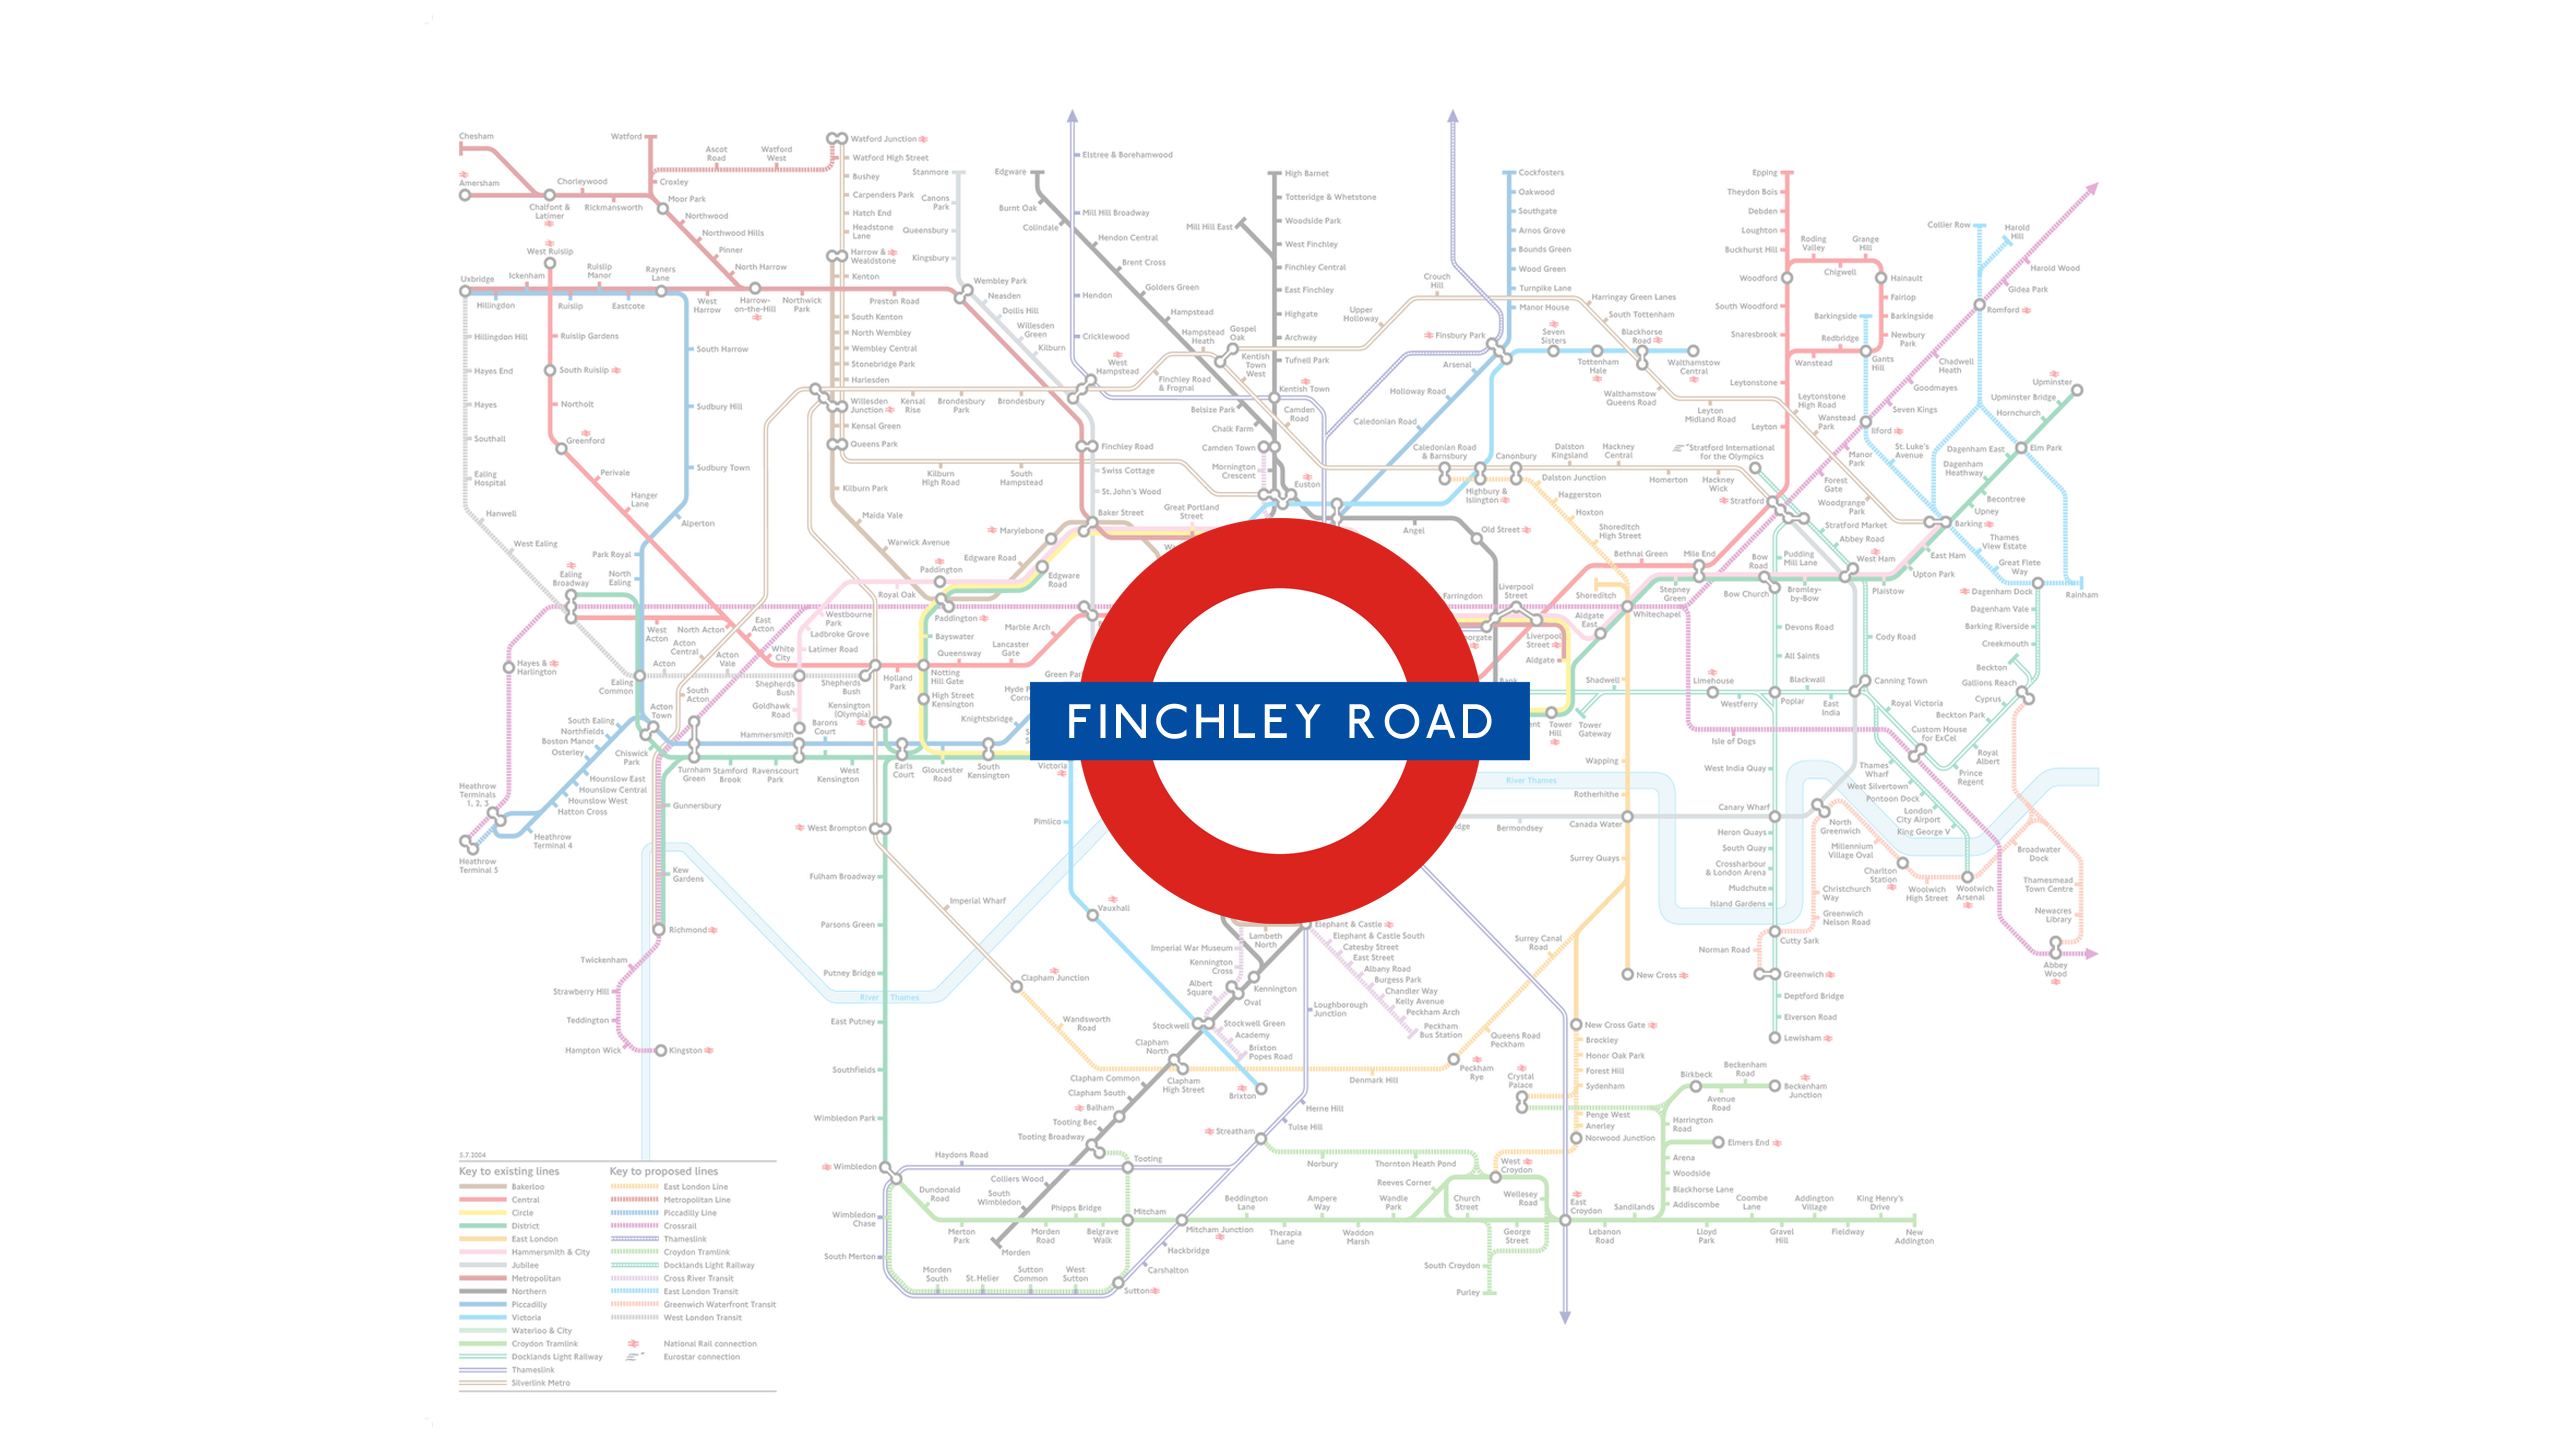 Finchley Road (Map)